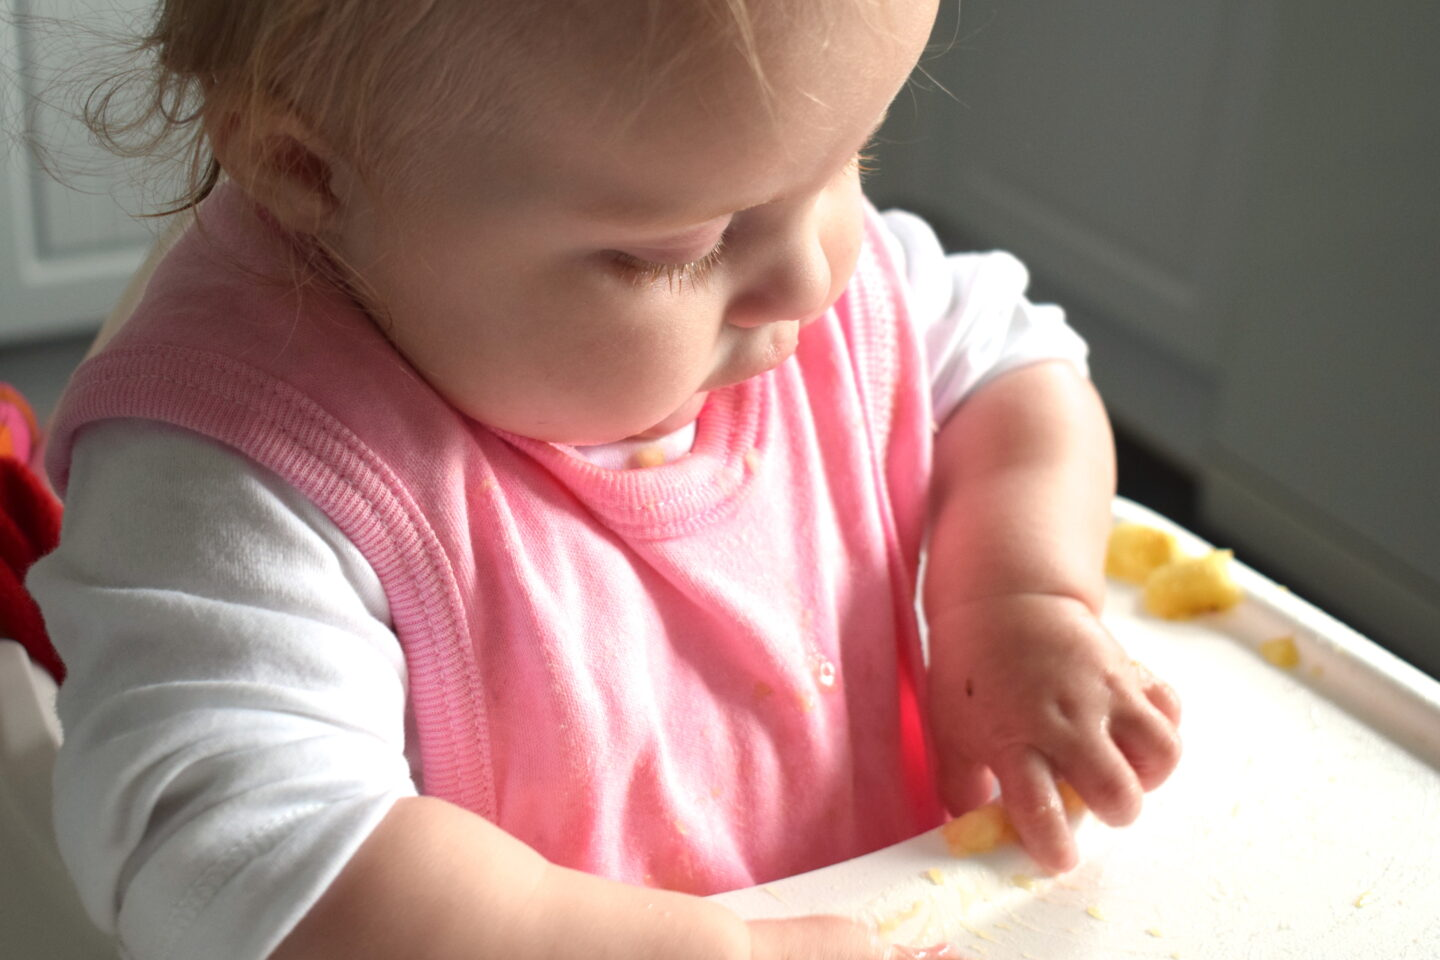 Our baby's Cow's Milk Protein Allergy (CMPA) journey